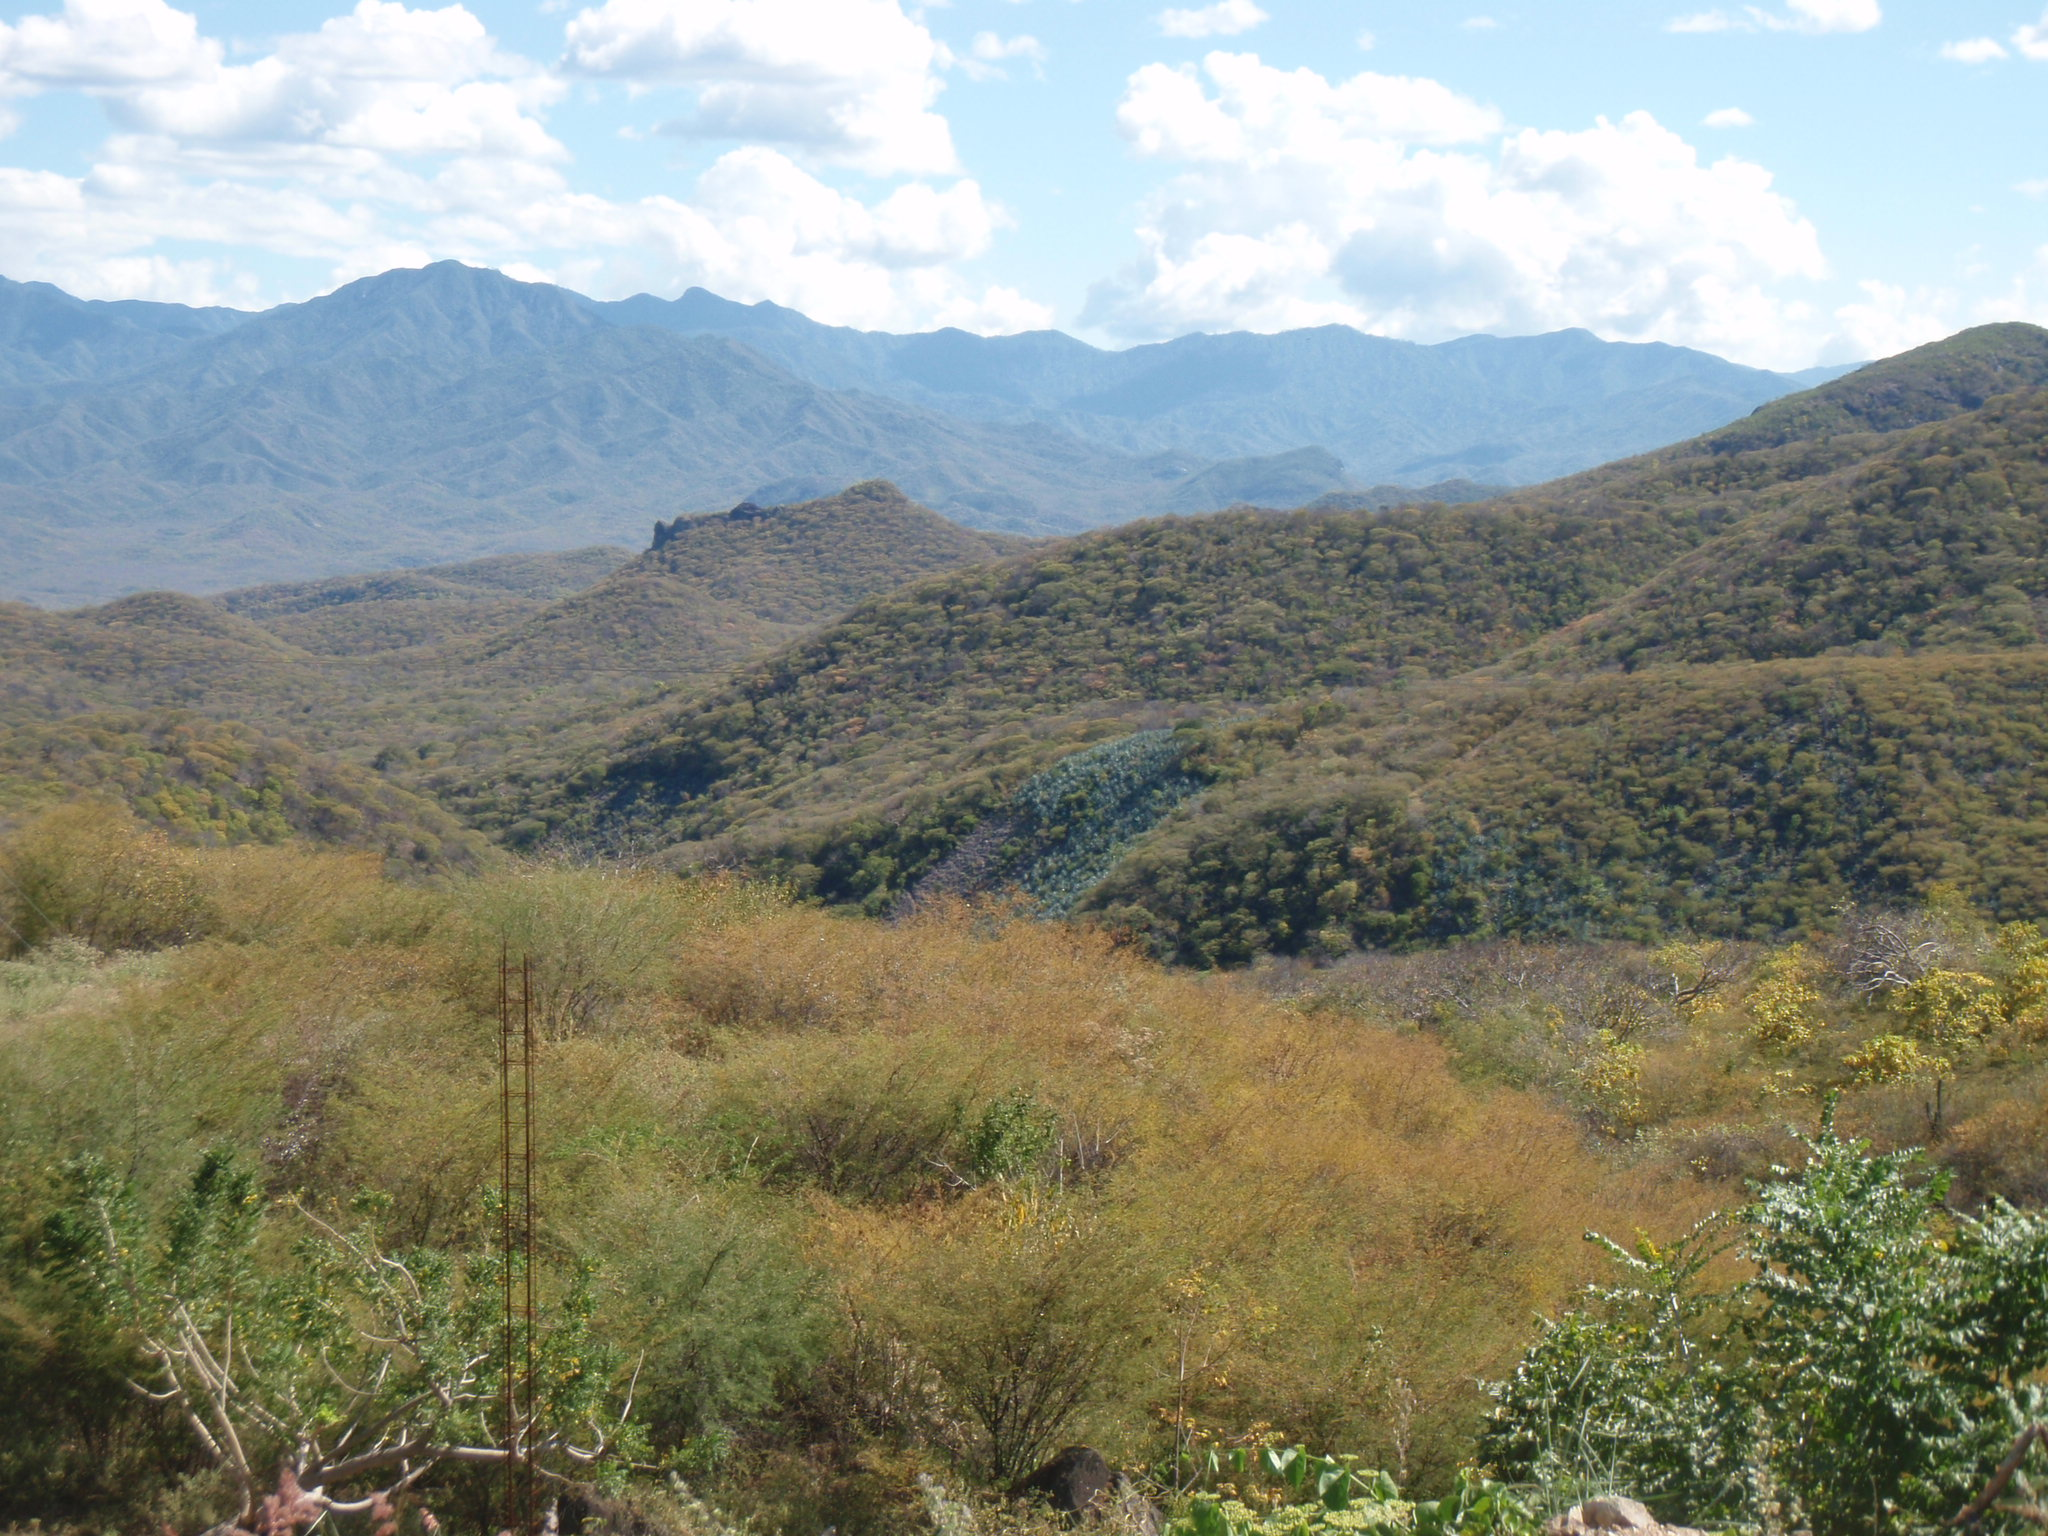 Sheer endless mountains need to be crossed in the Oaxaca district